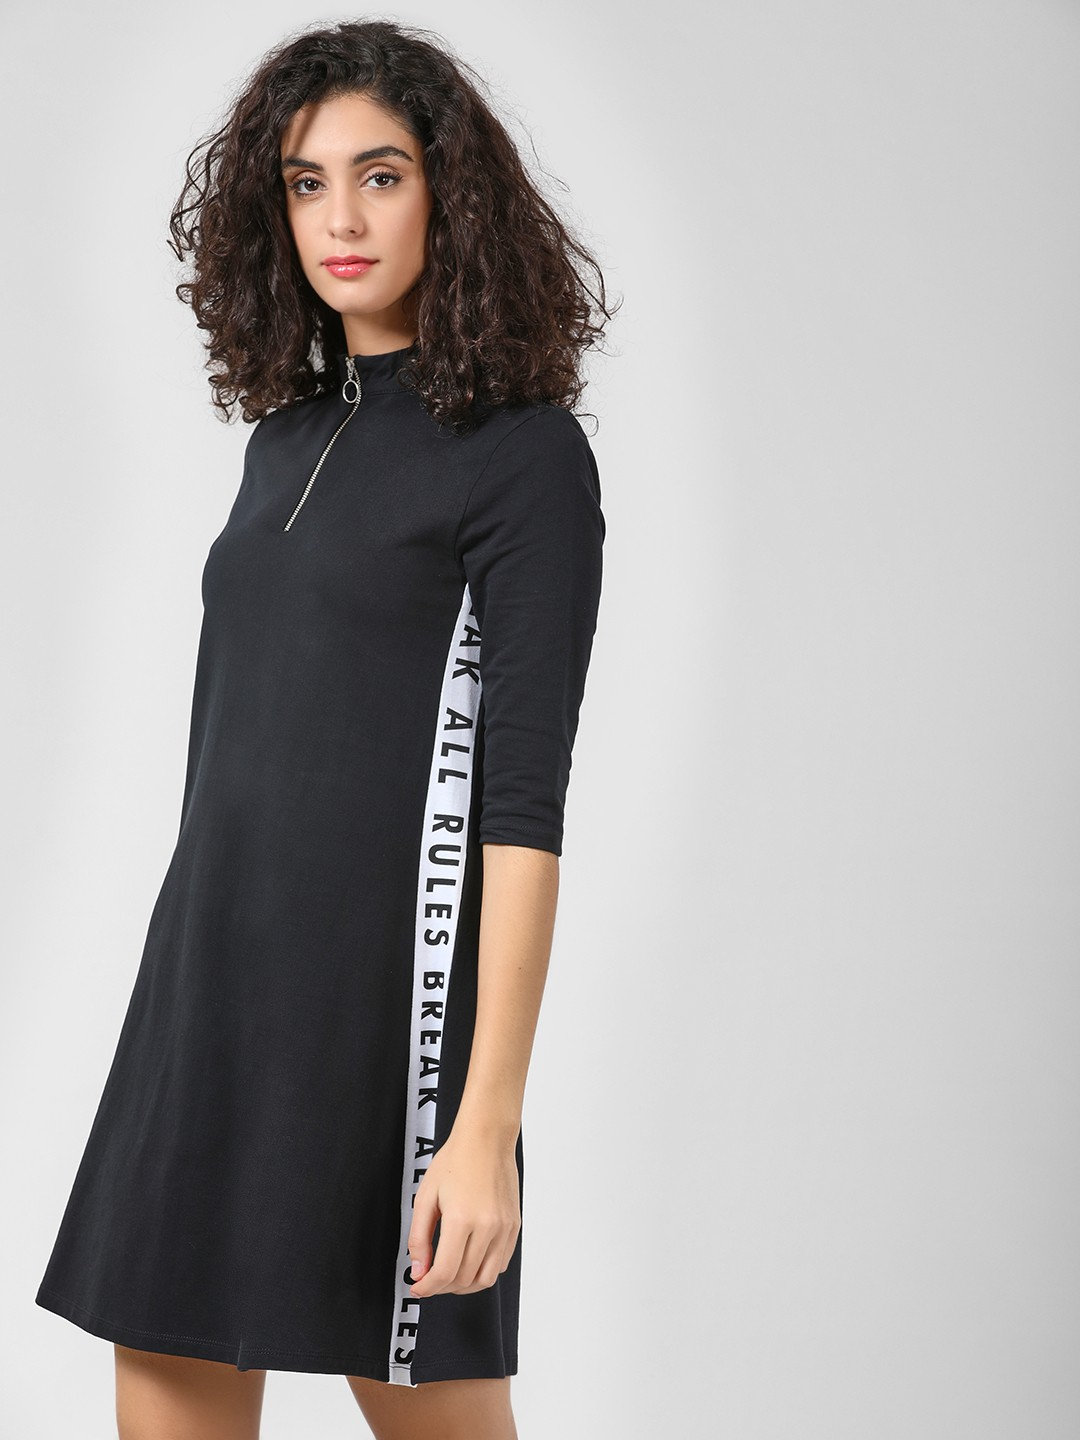 Beyond Clouds Black Slogan Print Shift Dress 1